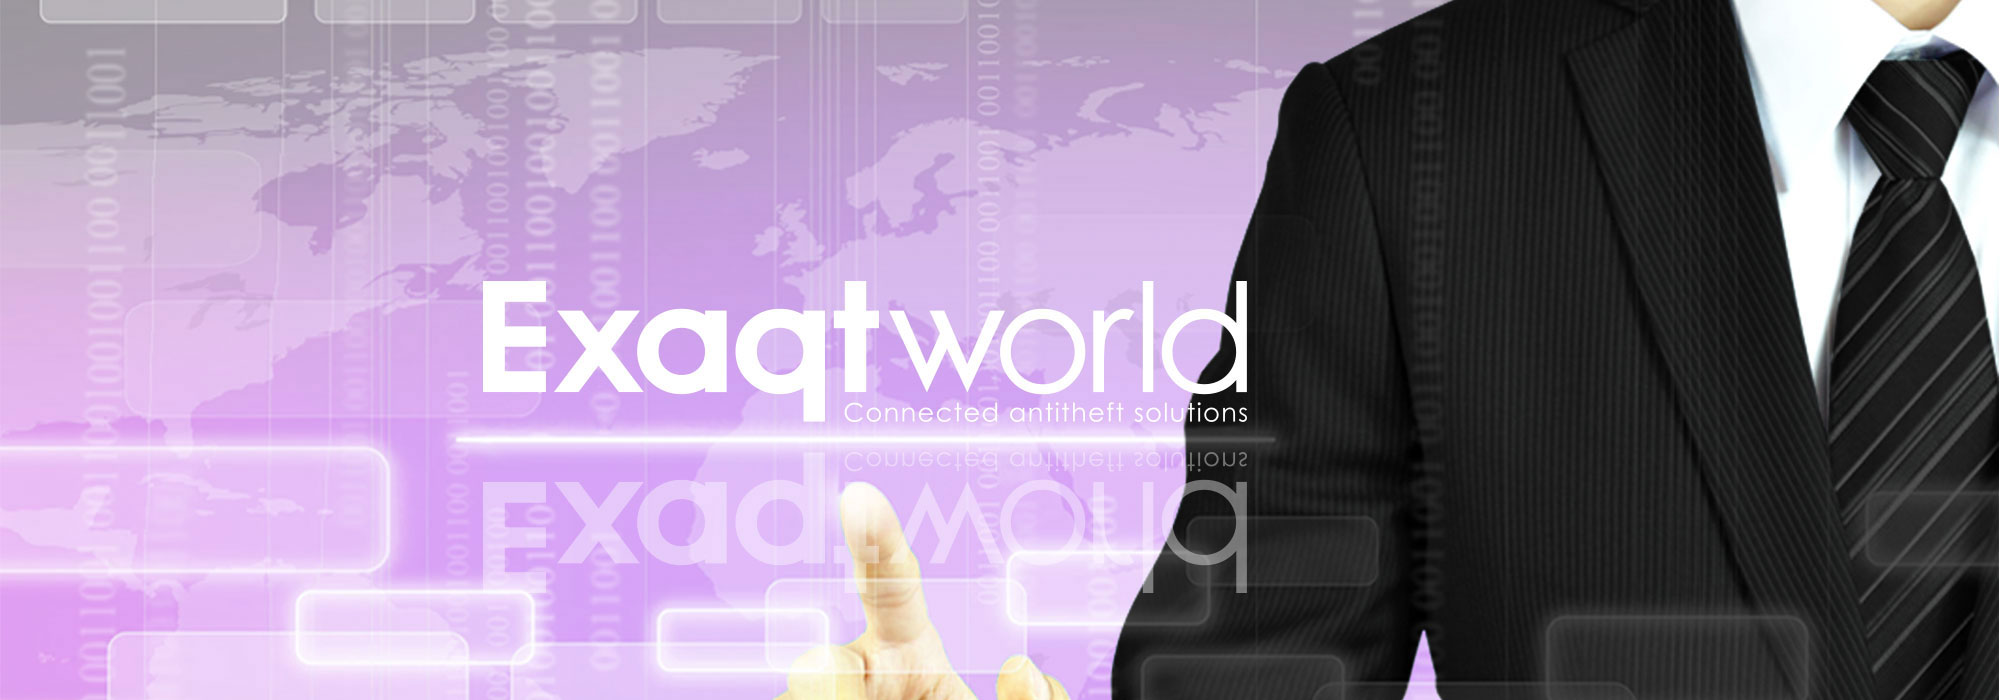 Exaqtworld group